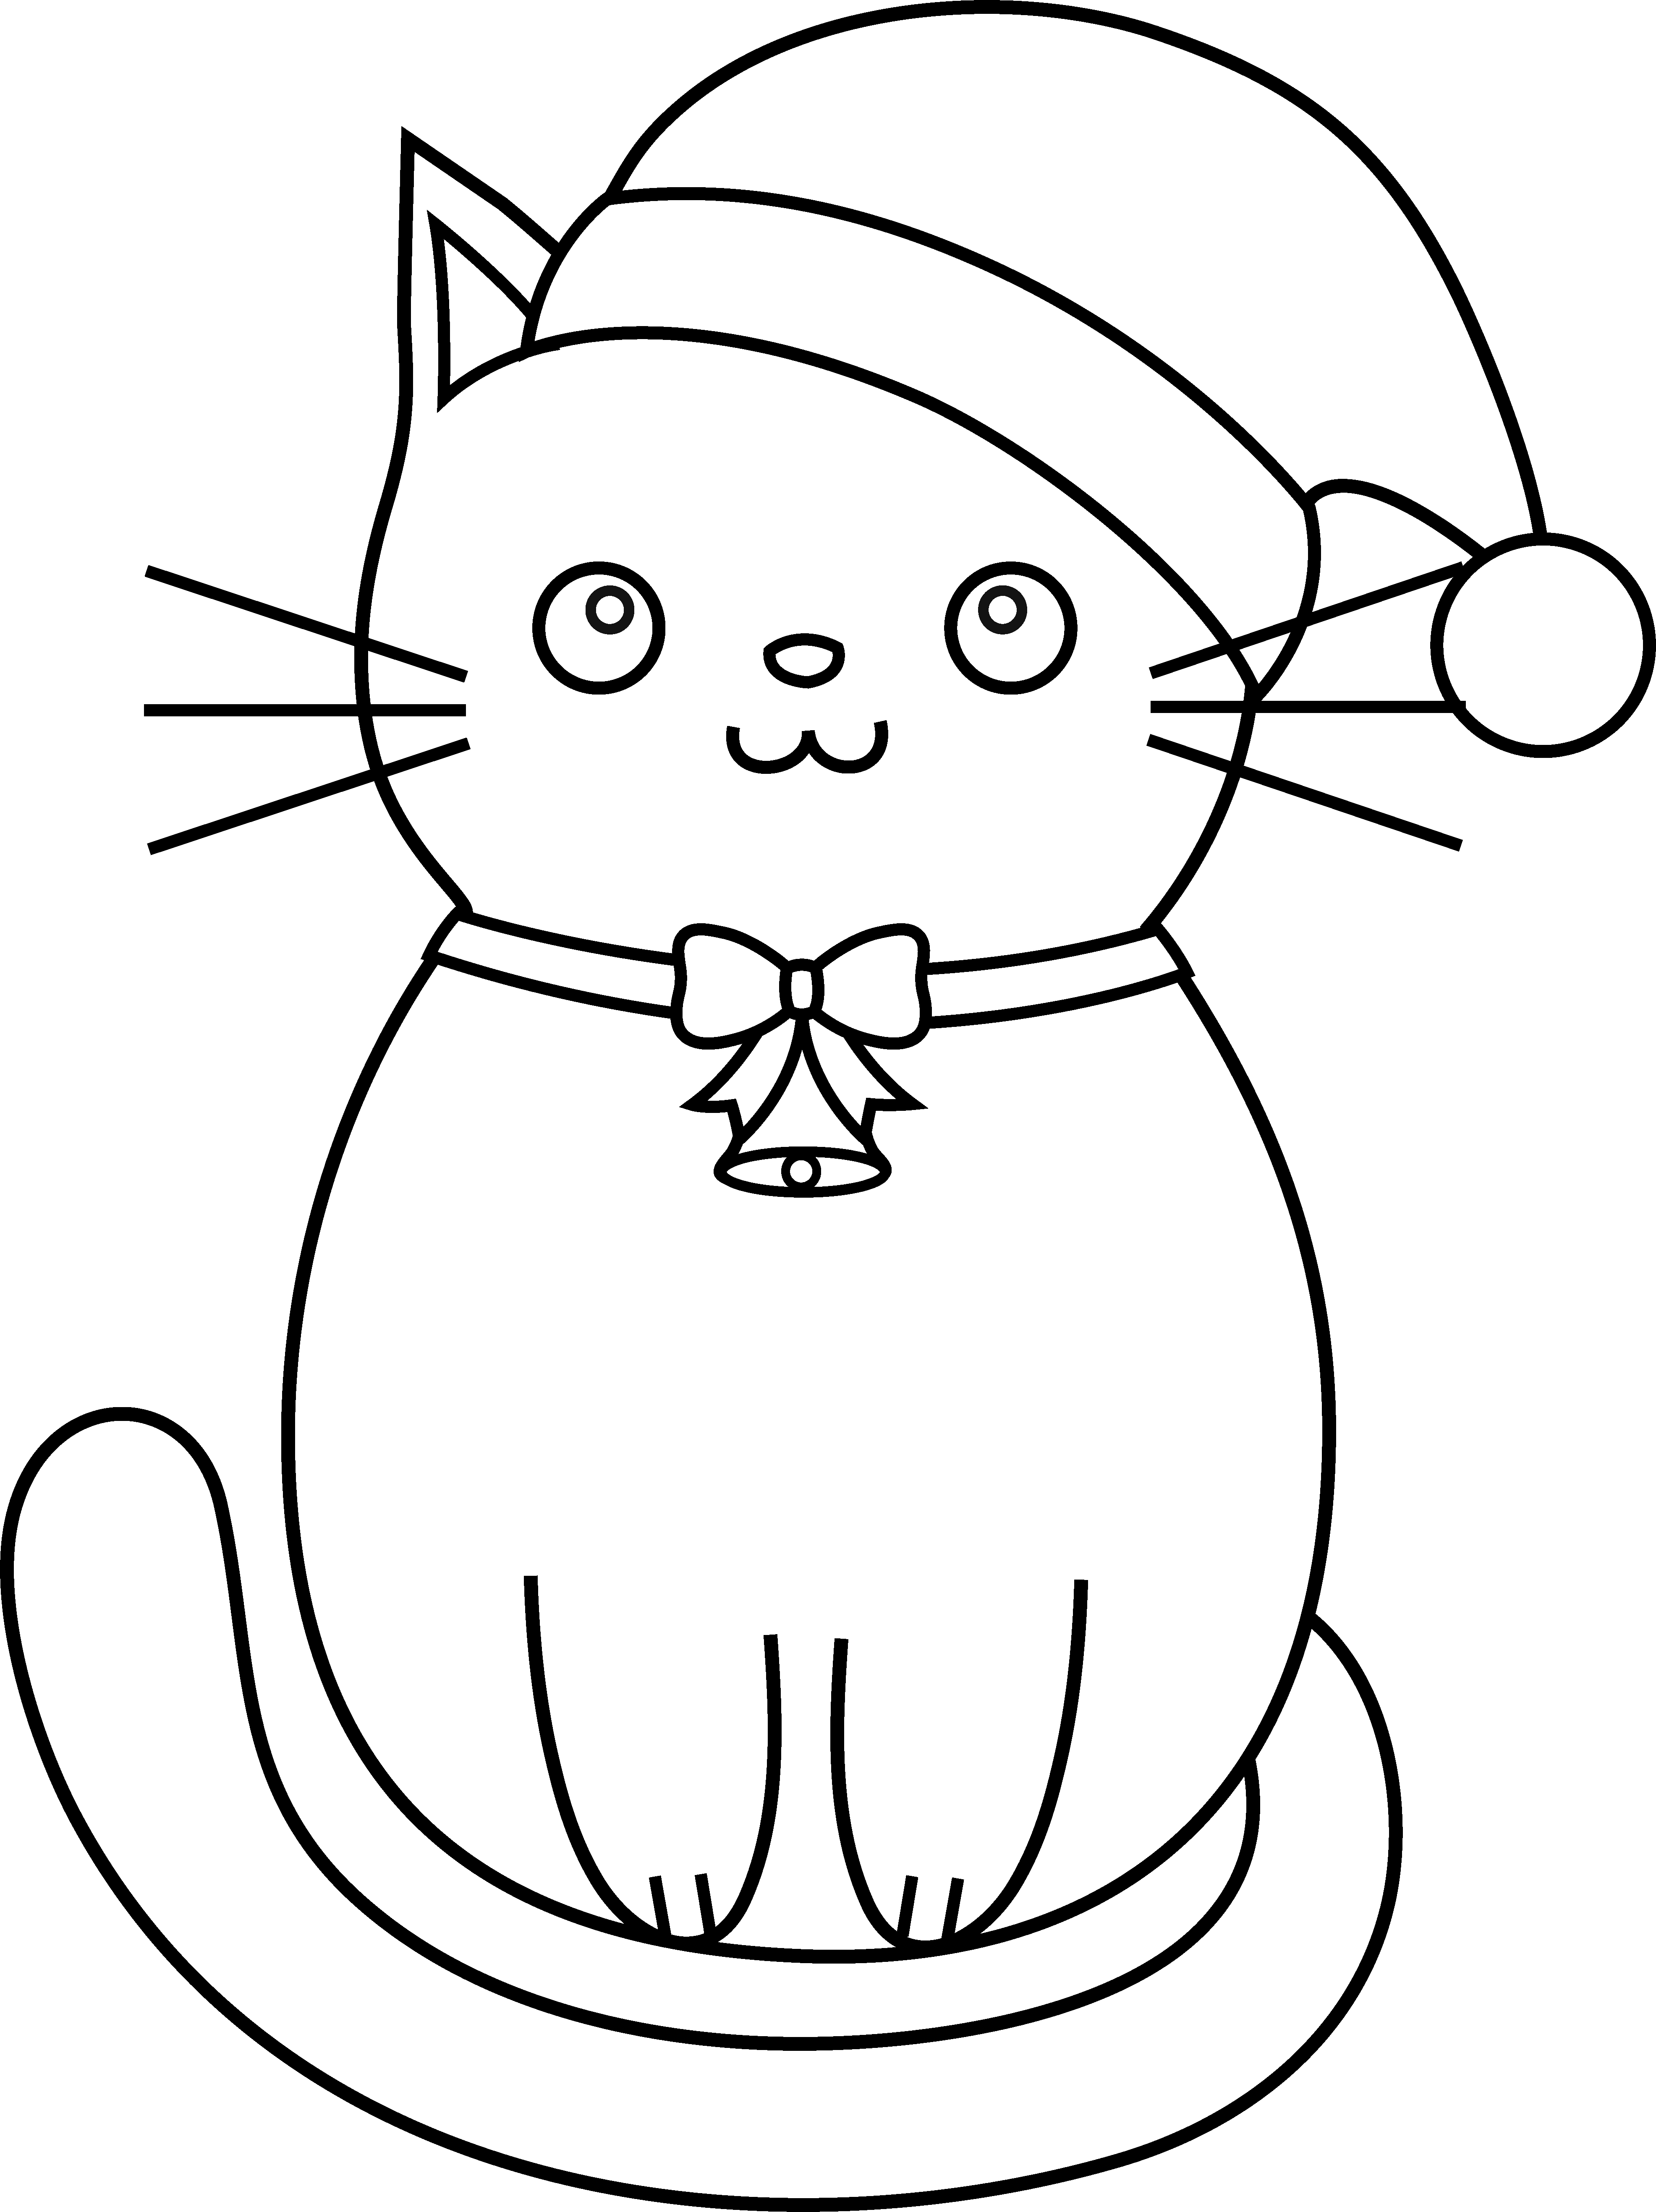 cat christmas coloring pages free printable cat coloring pages for kids cool2bkids christmas pages cat coloring